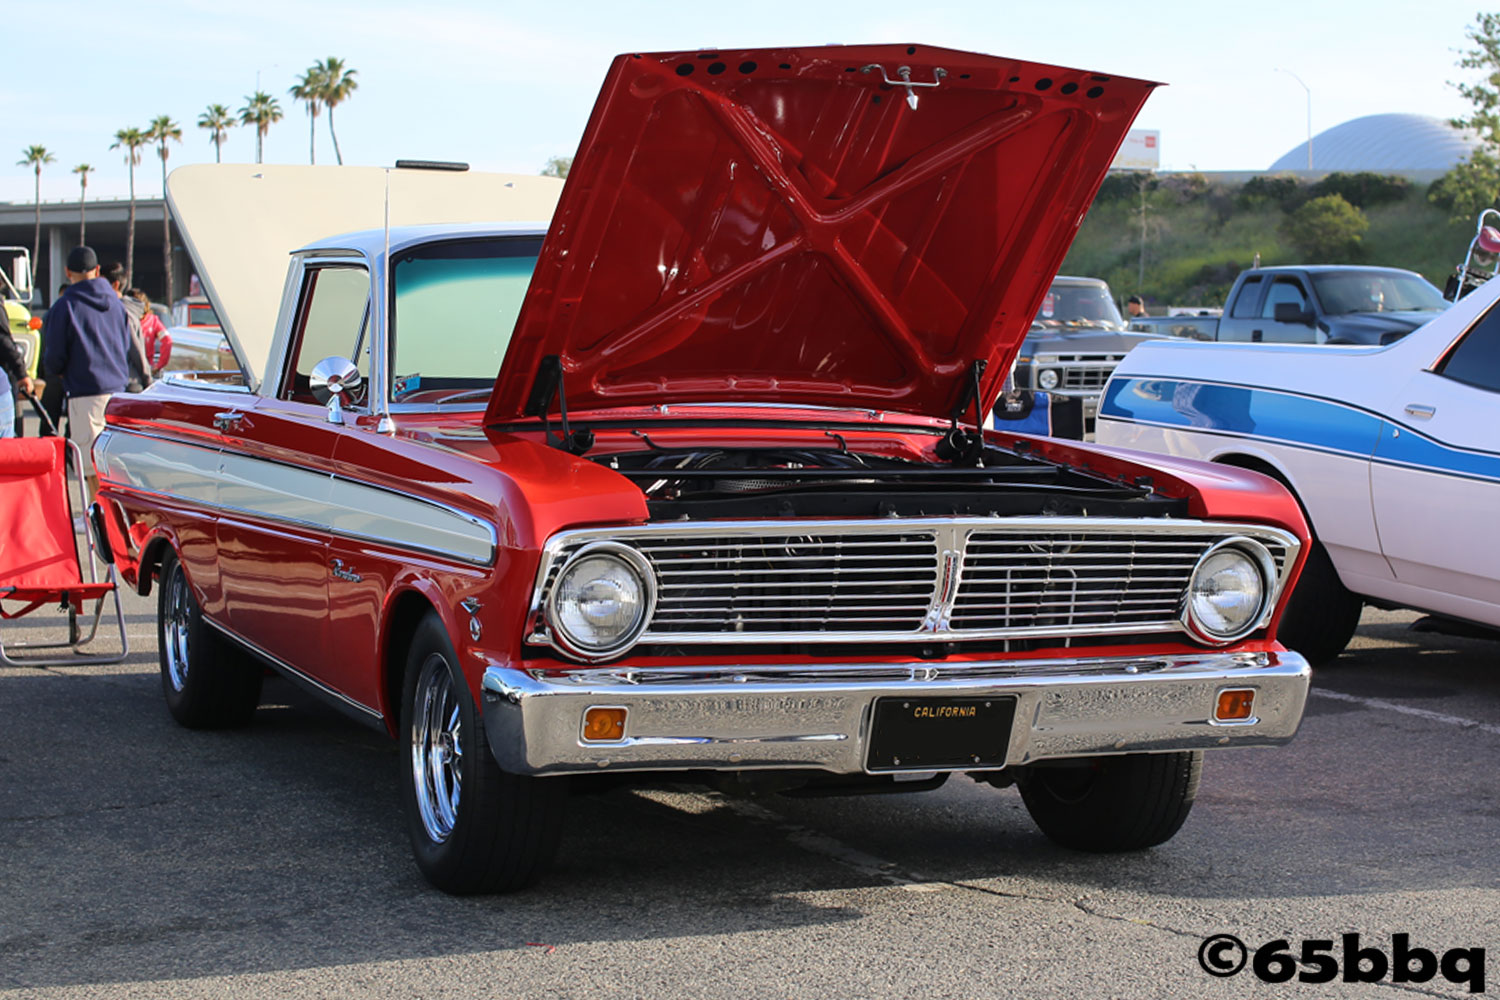 fabulous-fords-forever-april-2019-65bbq-r13.jpg